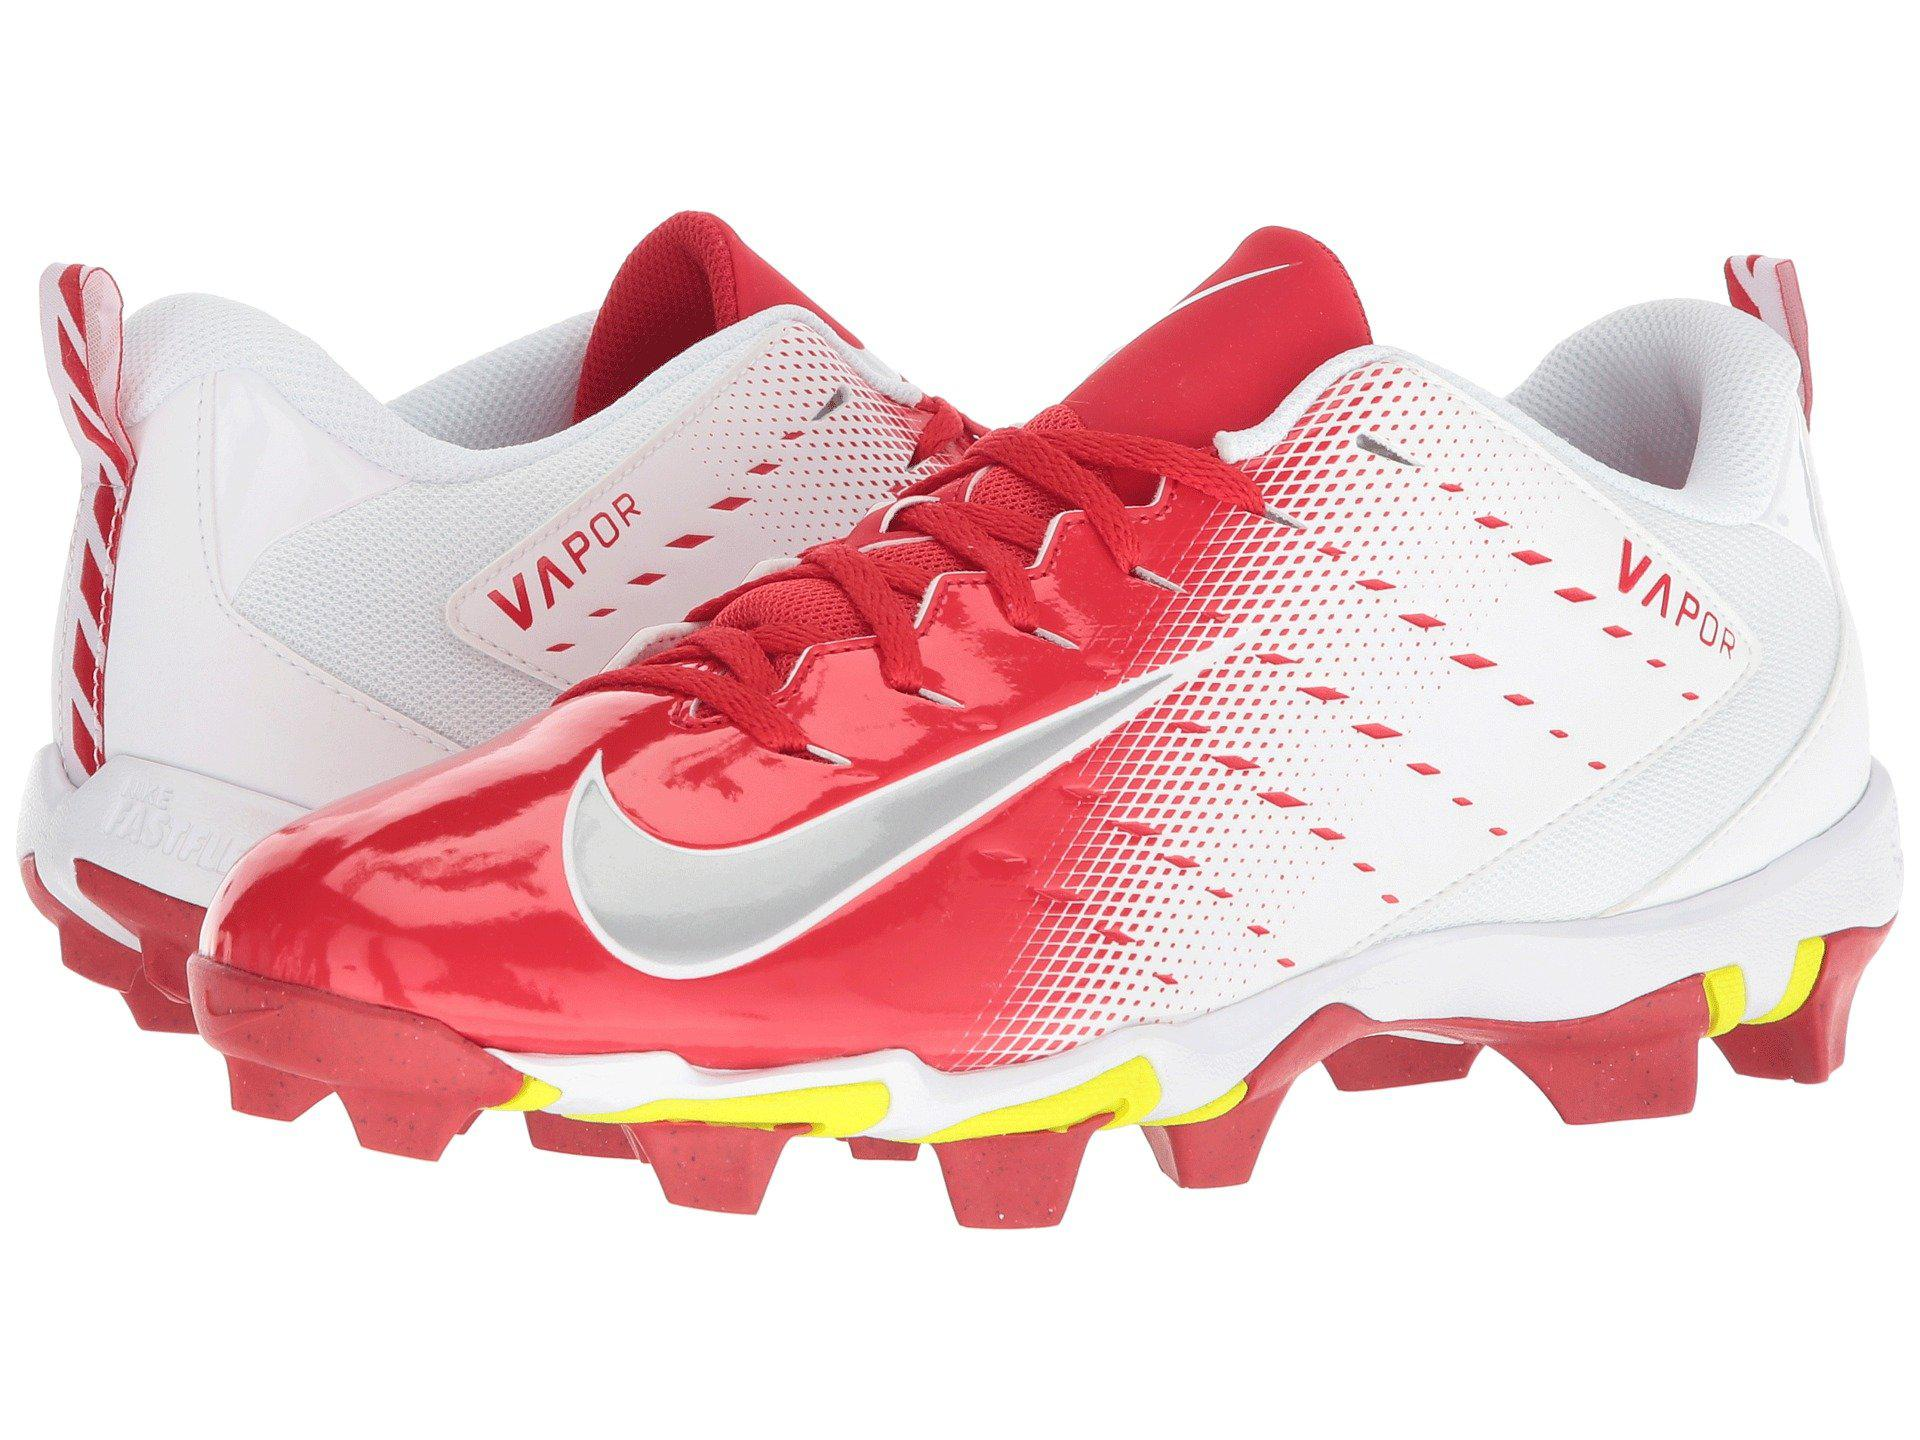 4930c1f081d Lyst - Nike Vapor Shark 3 in Red for Men - Save 14%